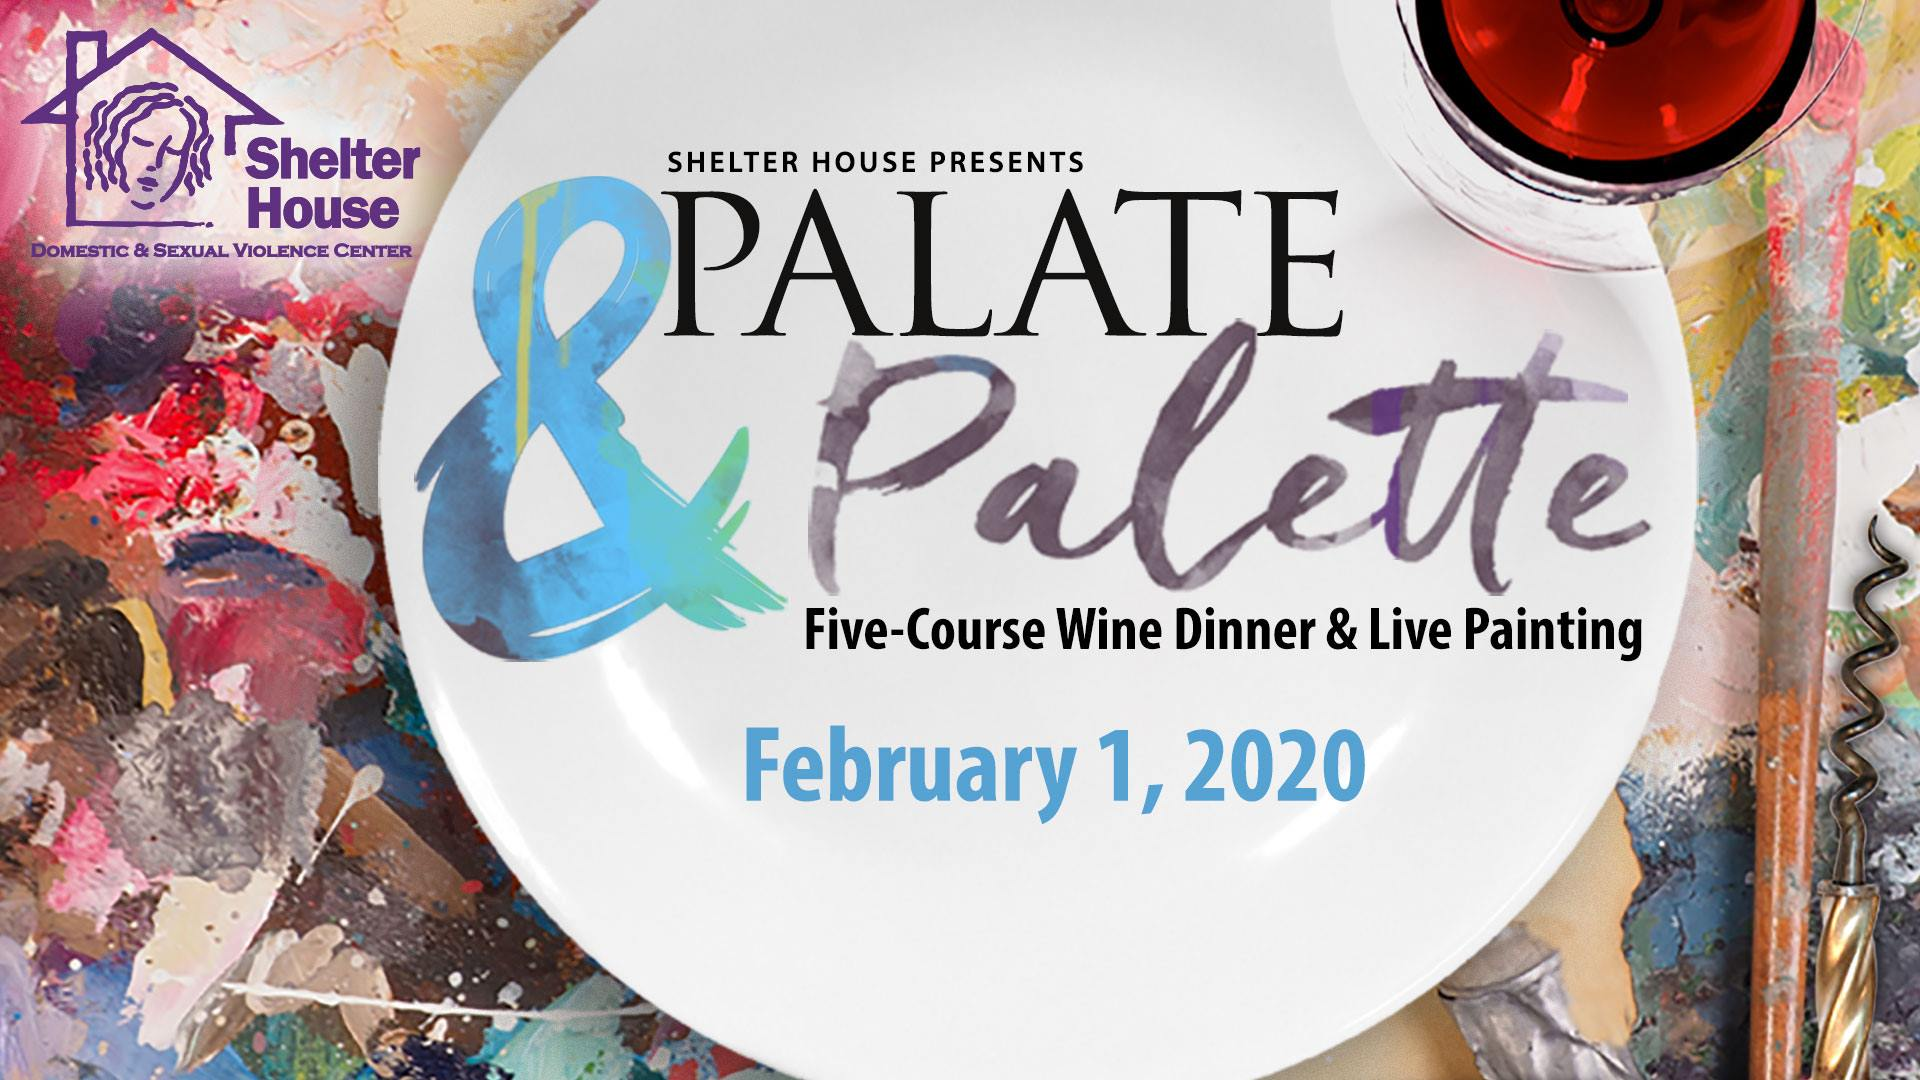 Shelter House's Palate & Palette Dinner & Live Painting